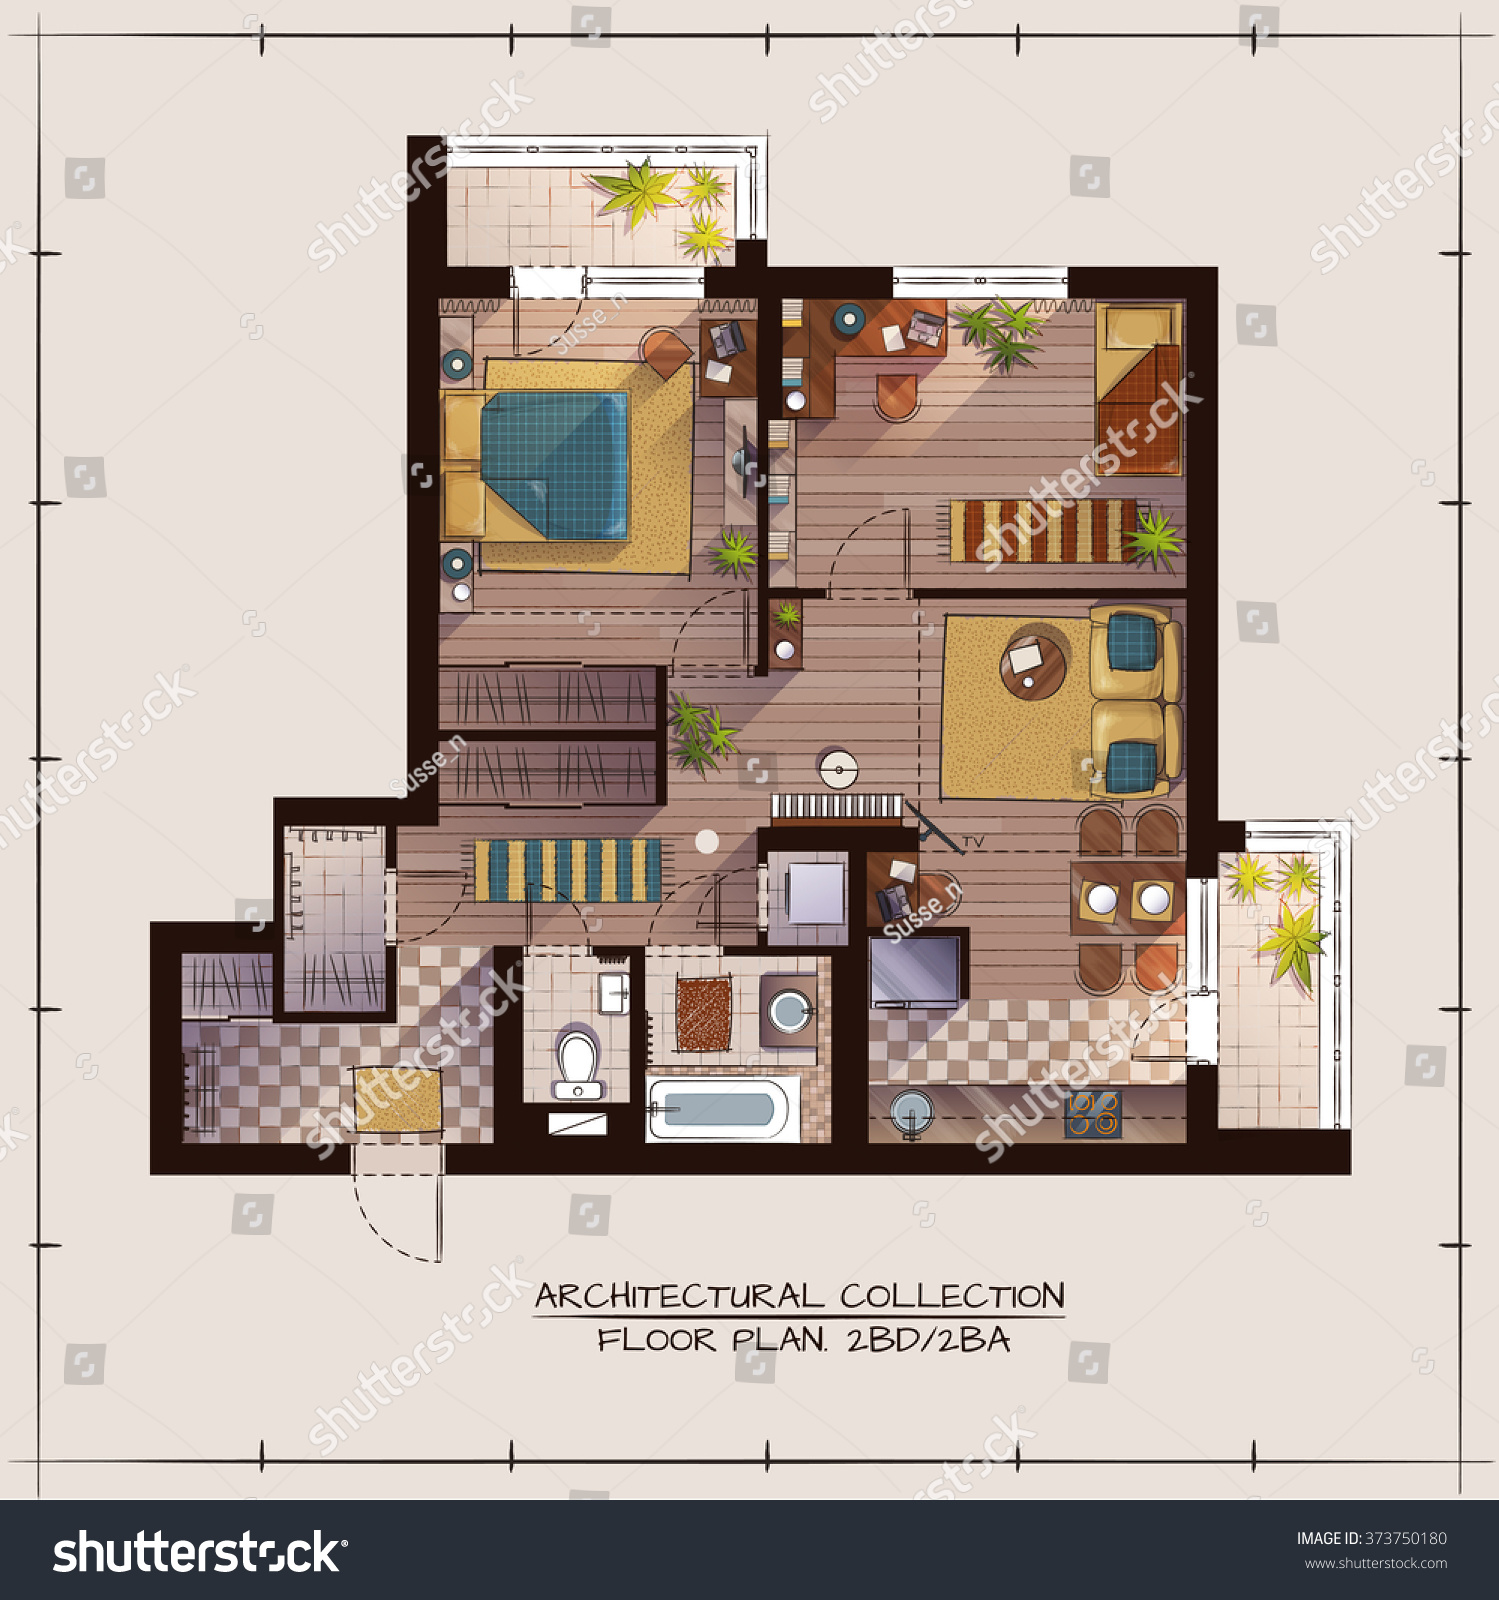 Architectural color floor plan bedrooms apartment stock for Color floor plans